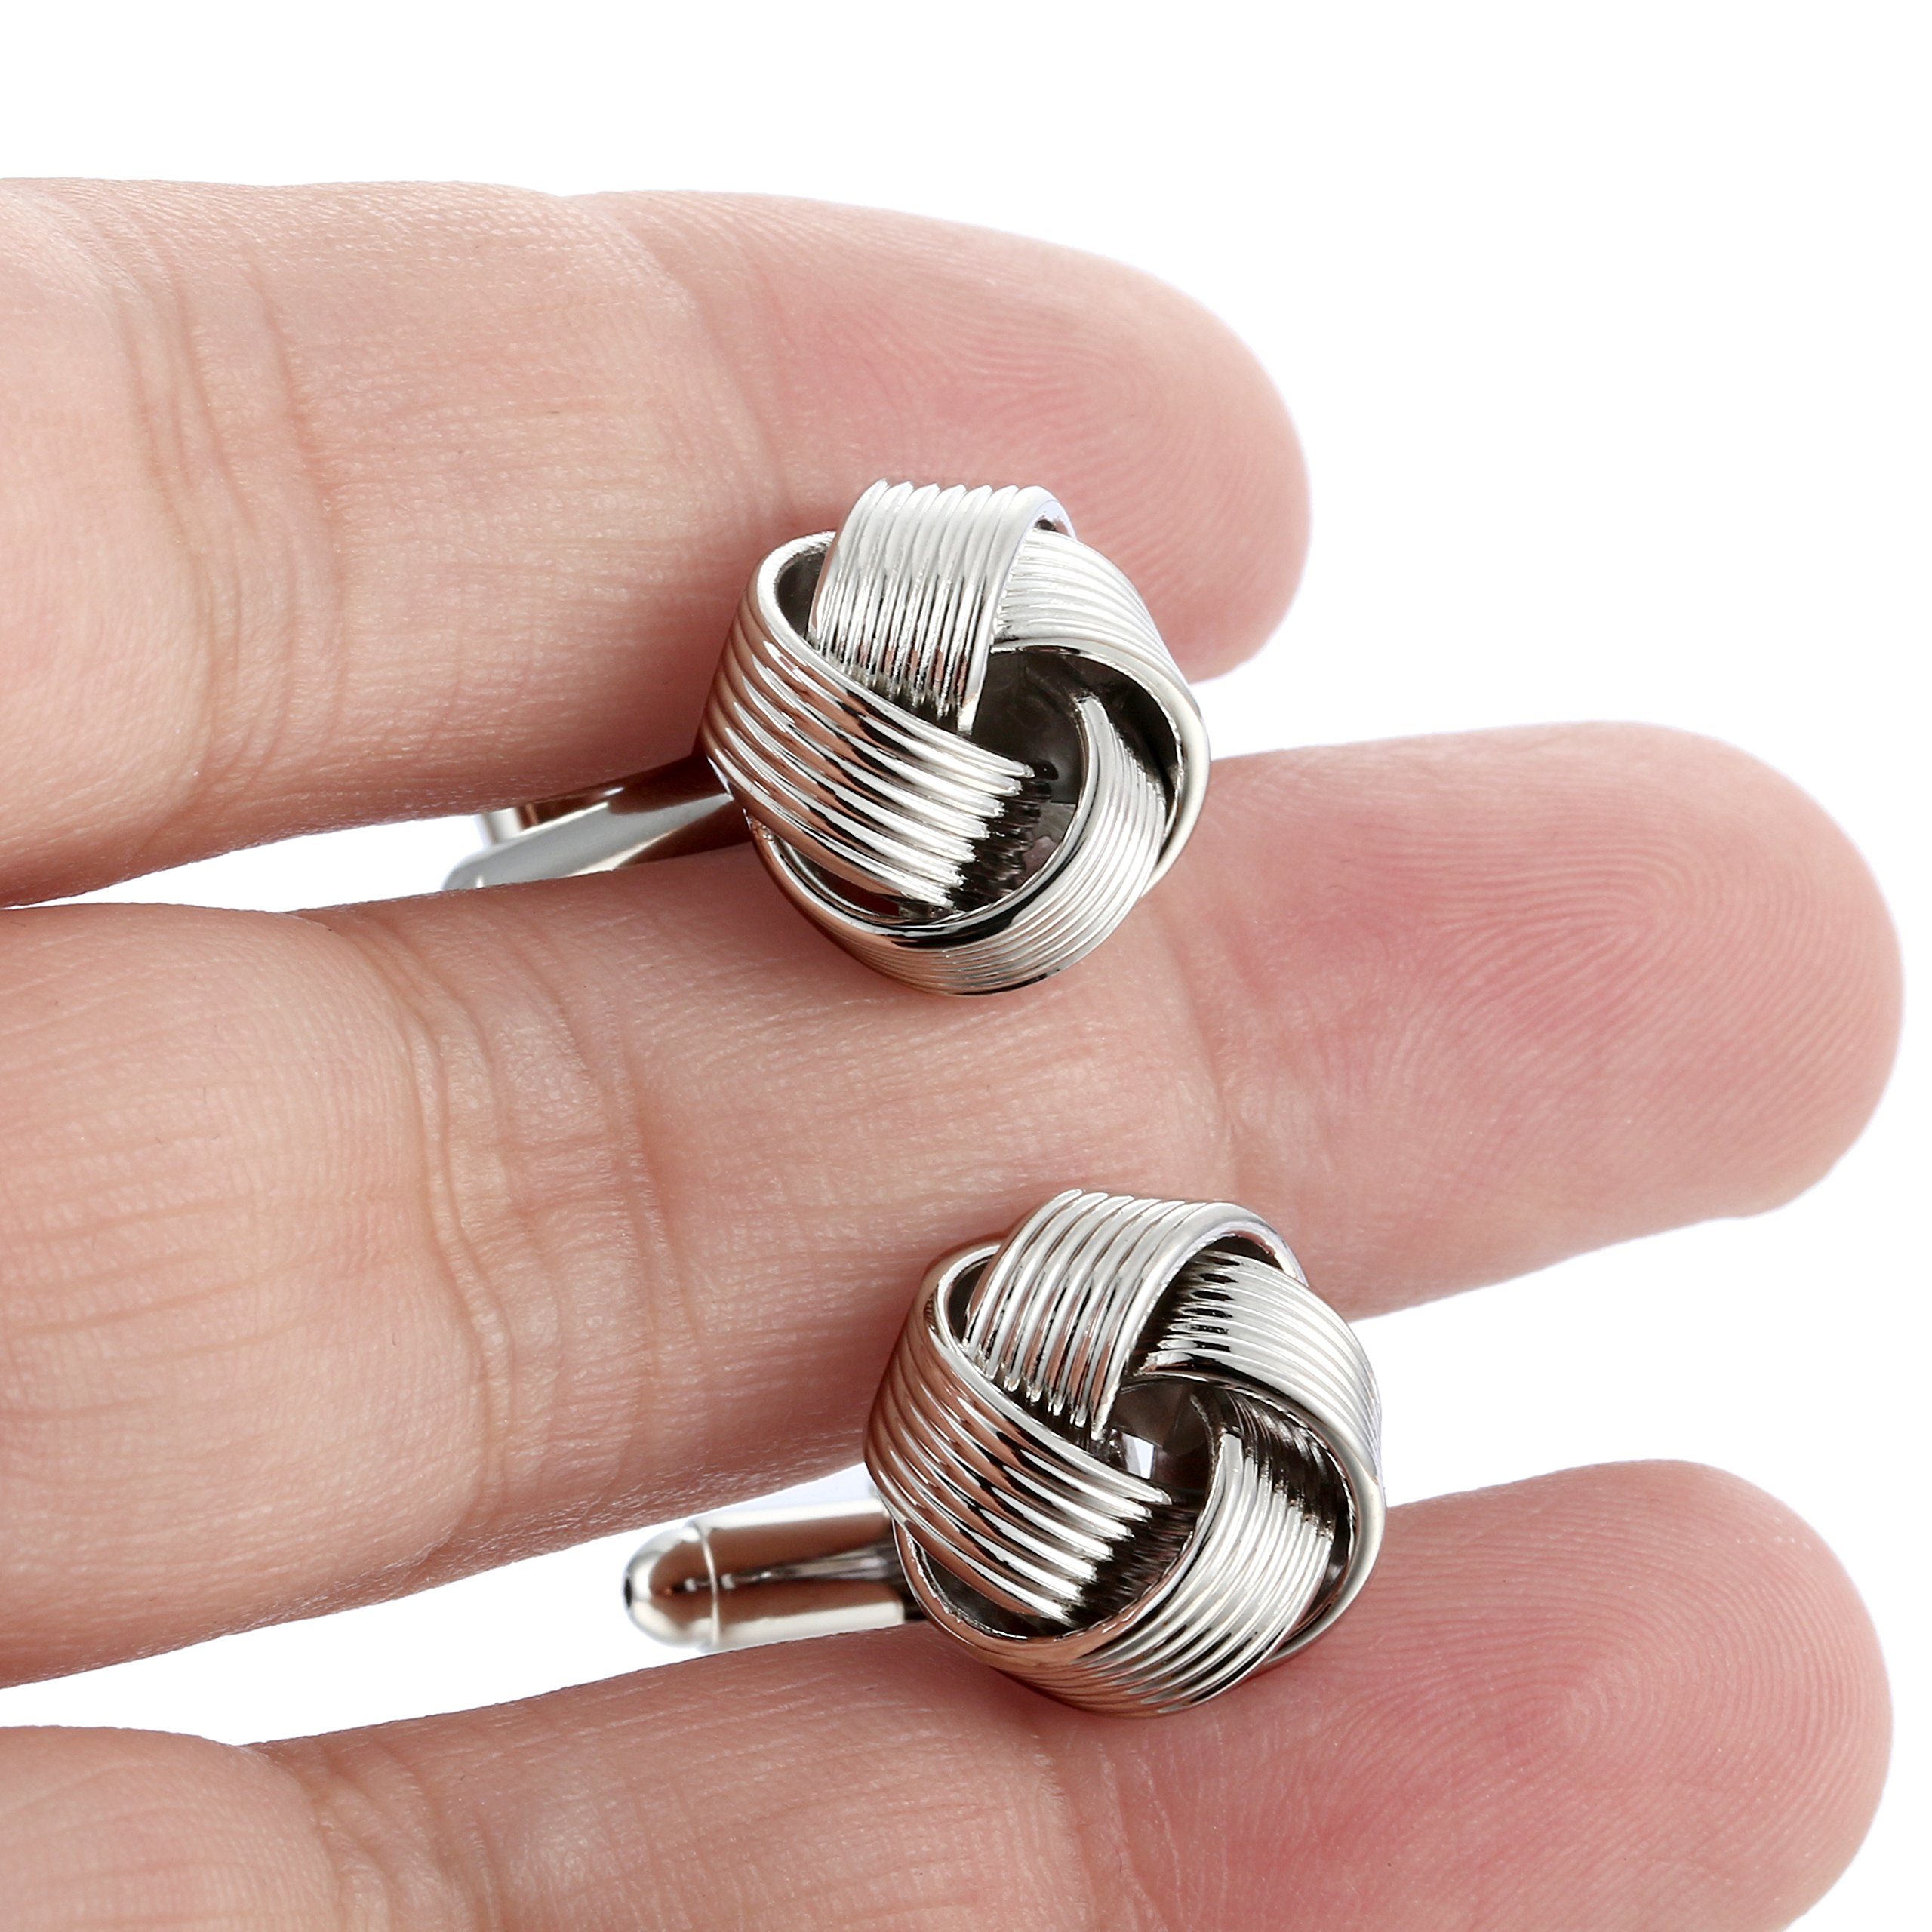 Jstyle Knot Cufflinks for Men Shirt Cufflinks Black Silver Tone Unique Business Wedding by Jstyle (Image #6)